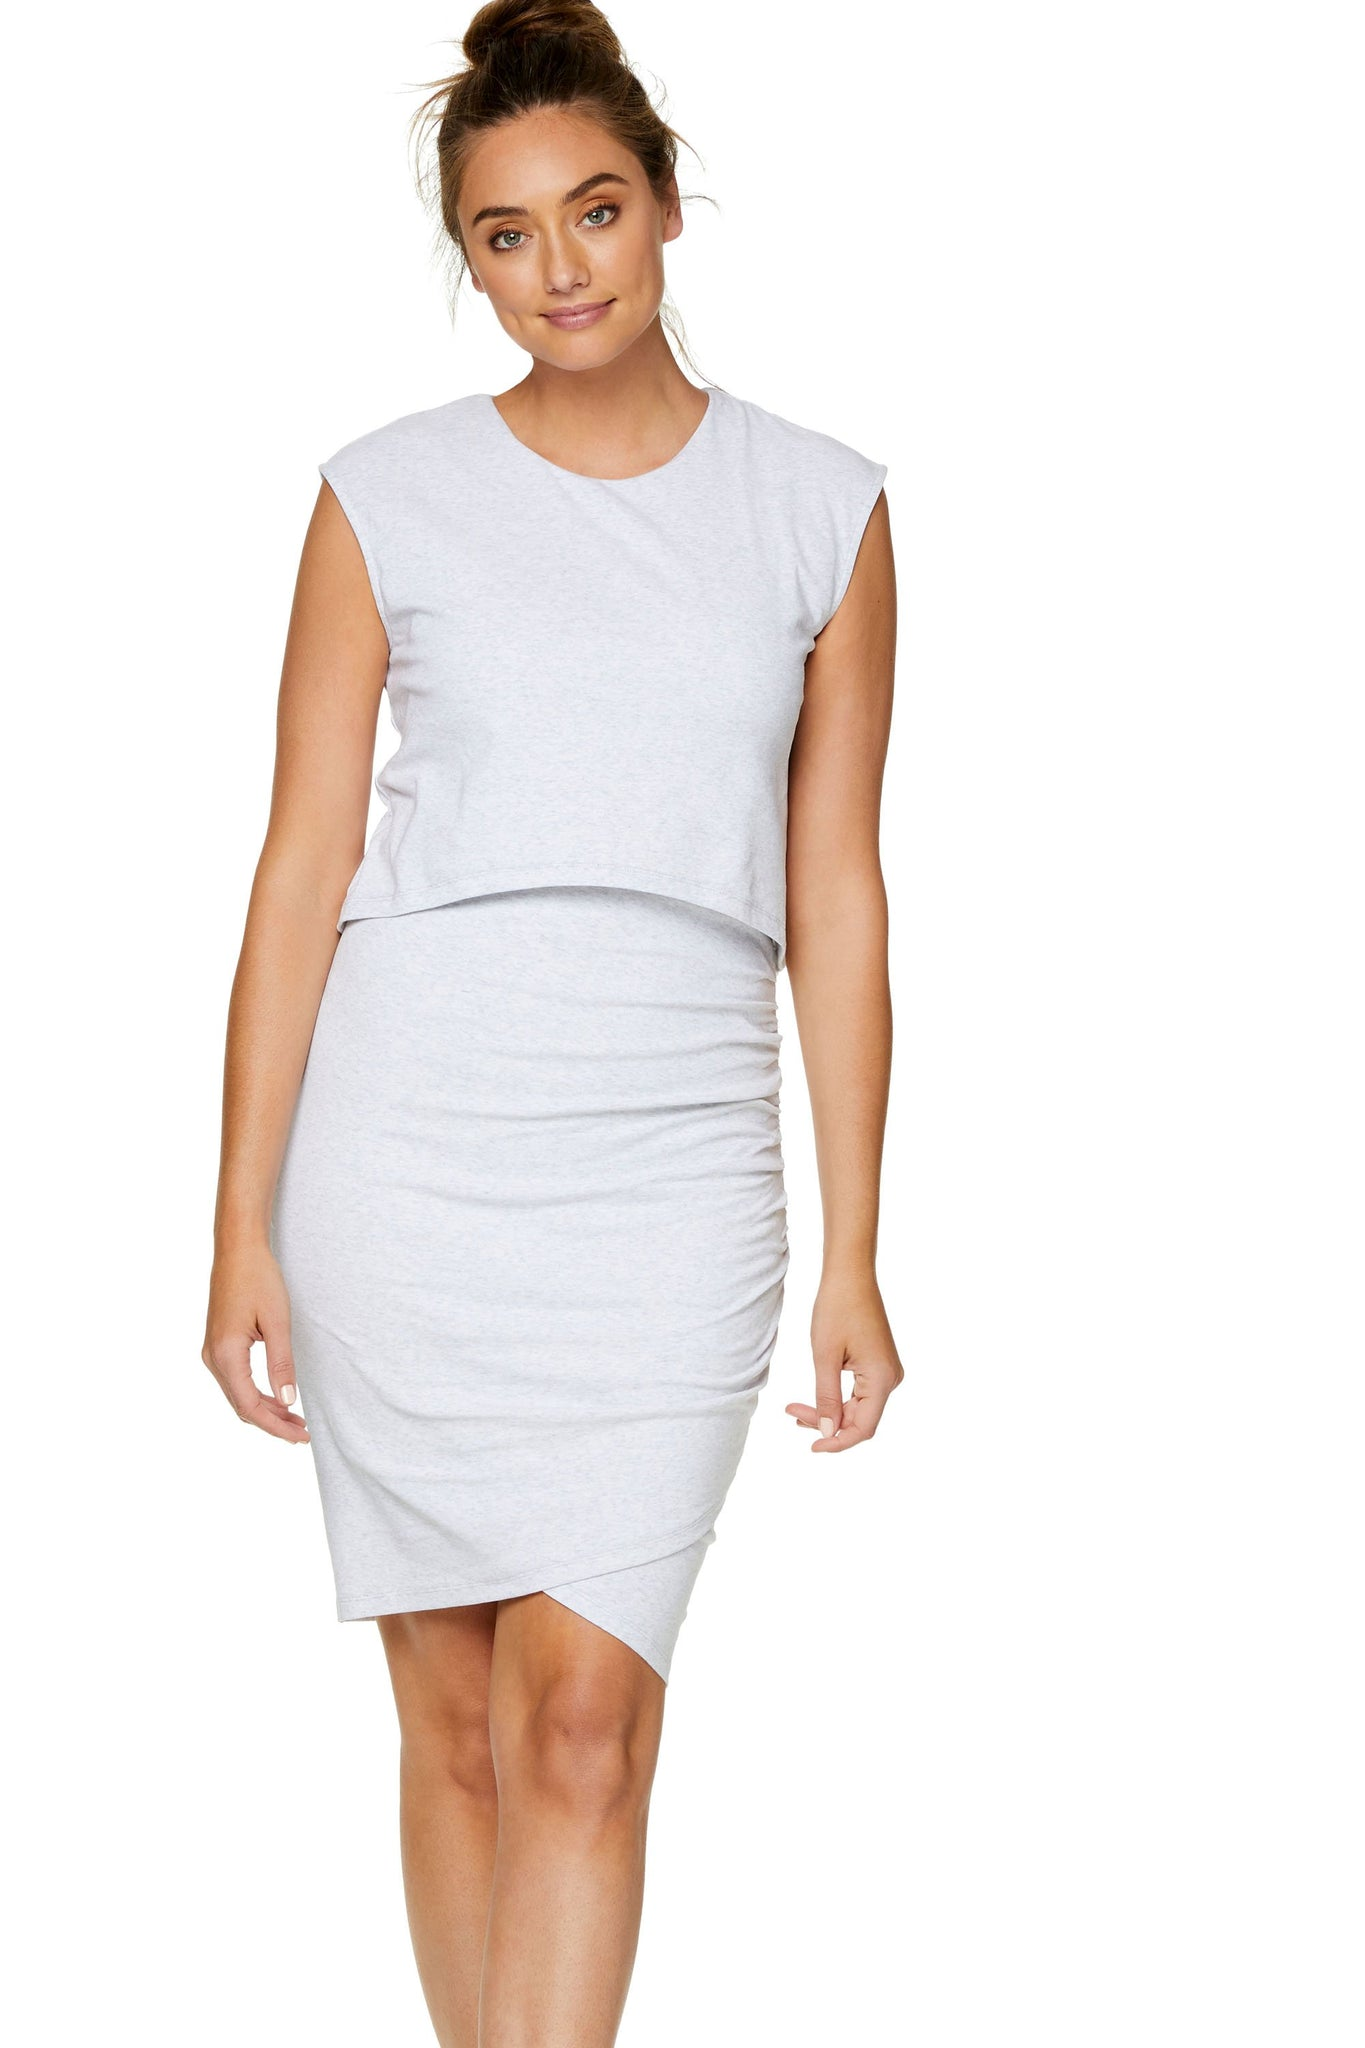 maternity nursing dress - grey marle 7